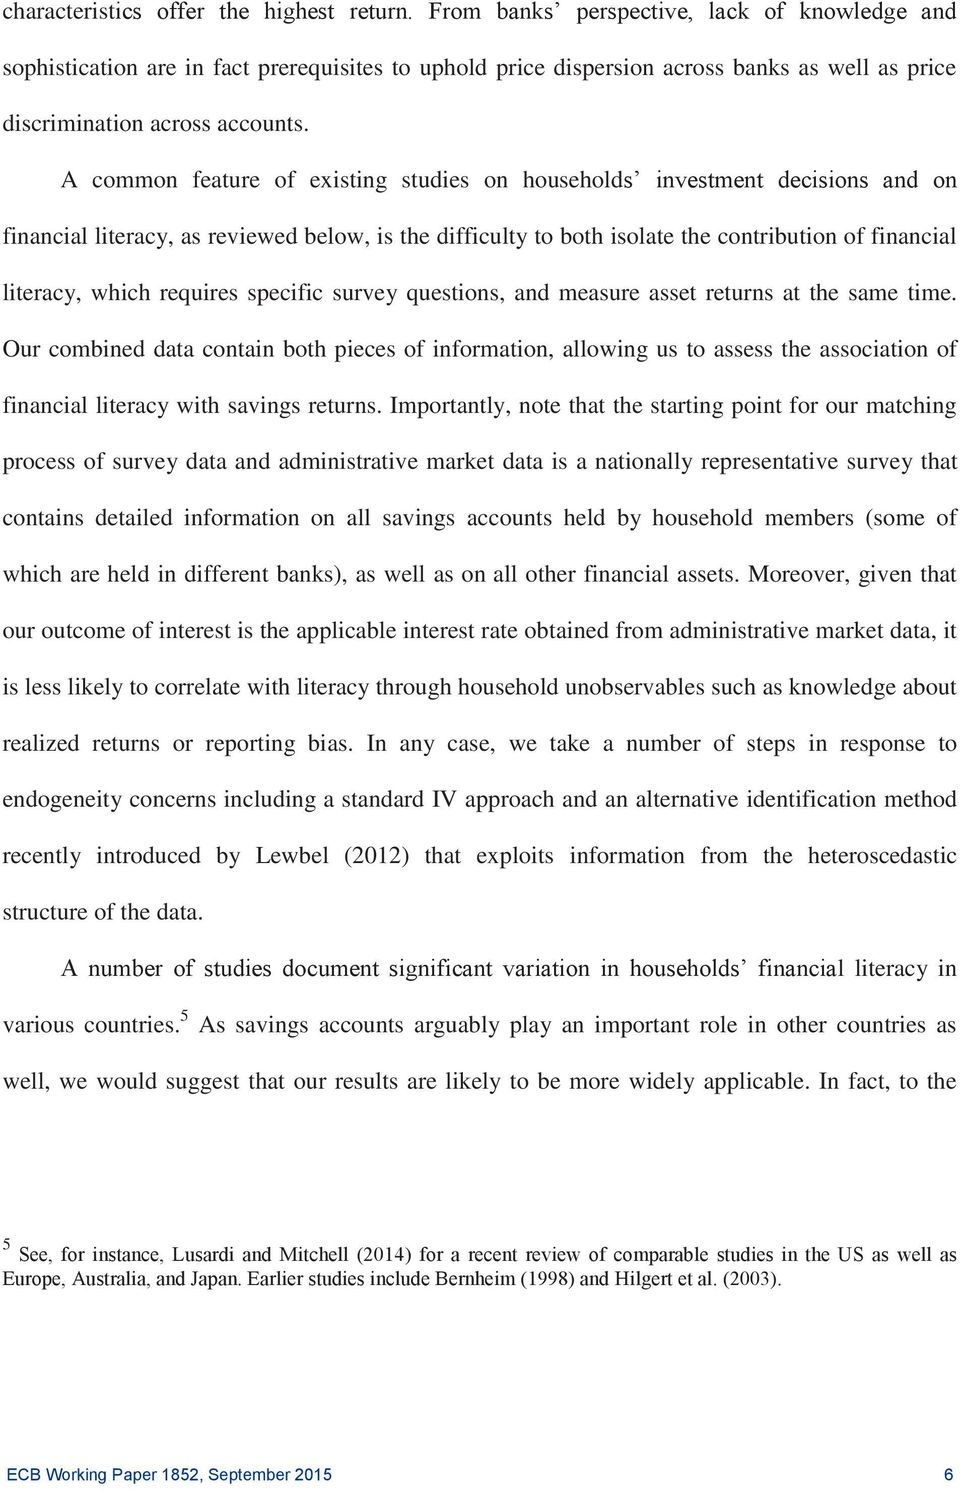 A common feature of existing studies on households investment decisions and on financial literacy, as reviewed below, is the difficulty to both isolate the contribution of financial literacy, which